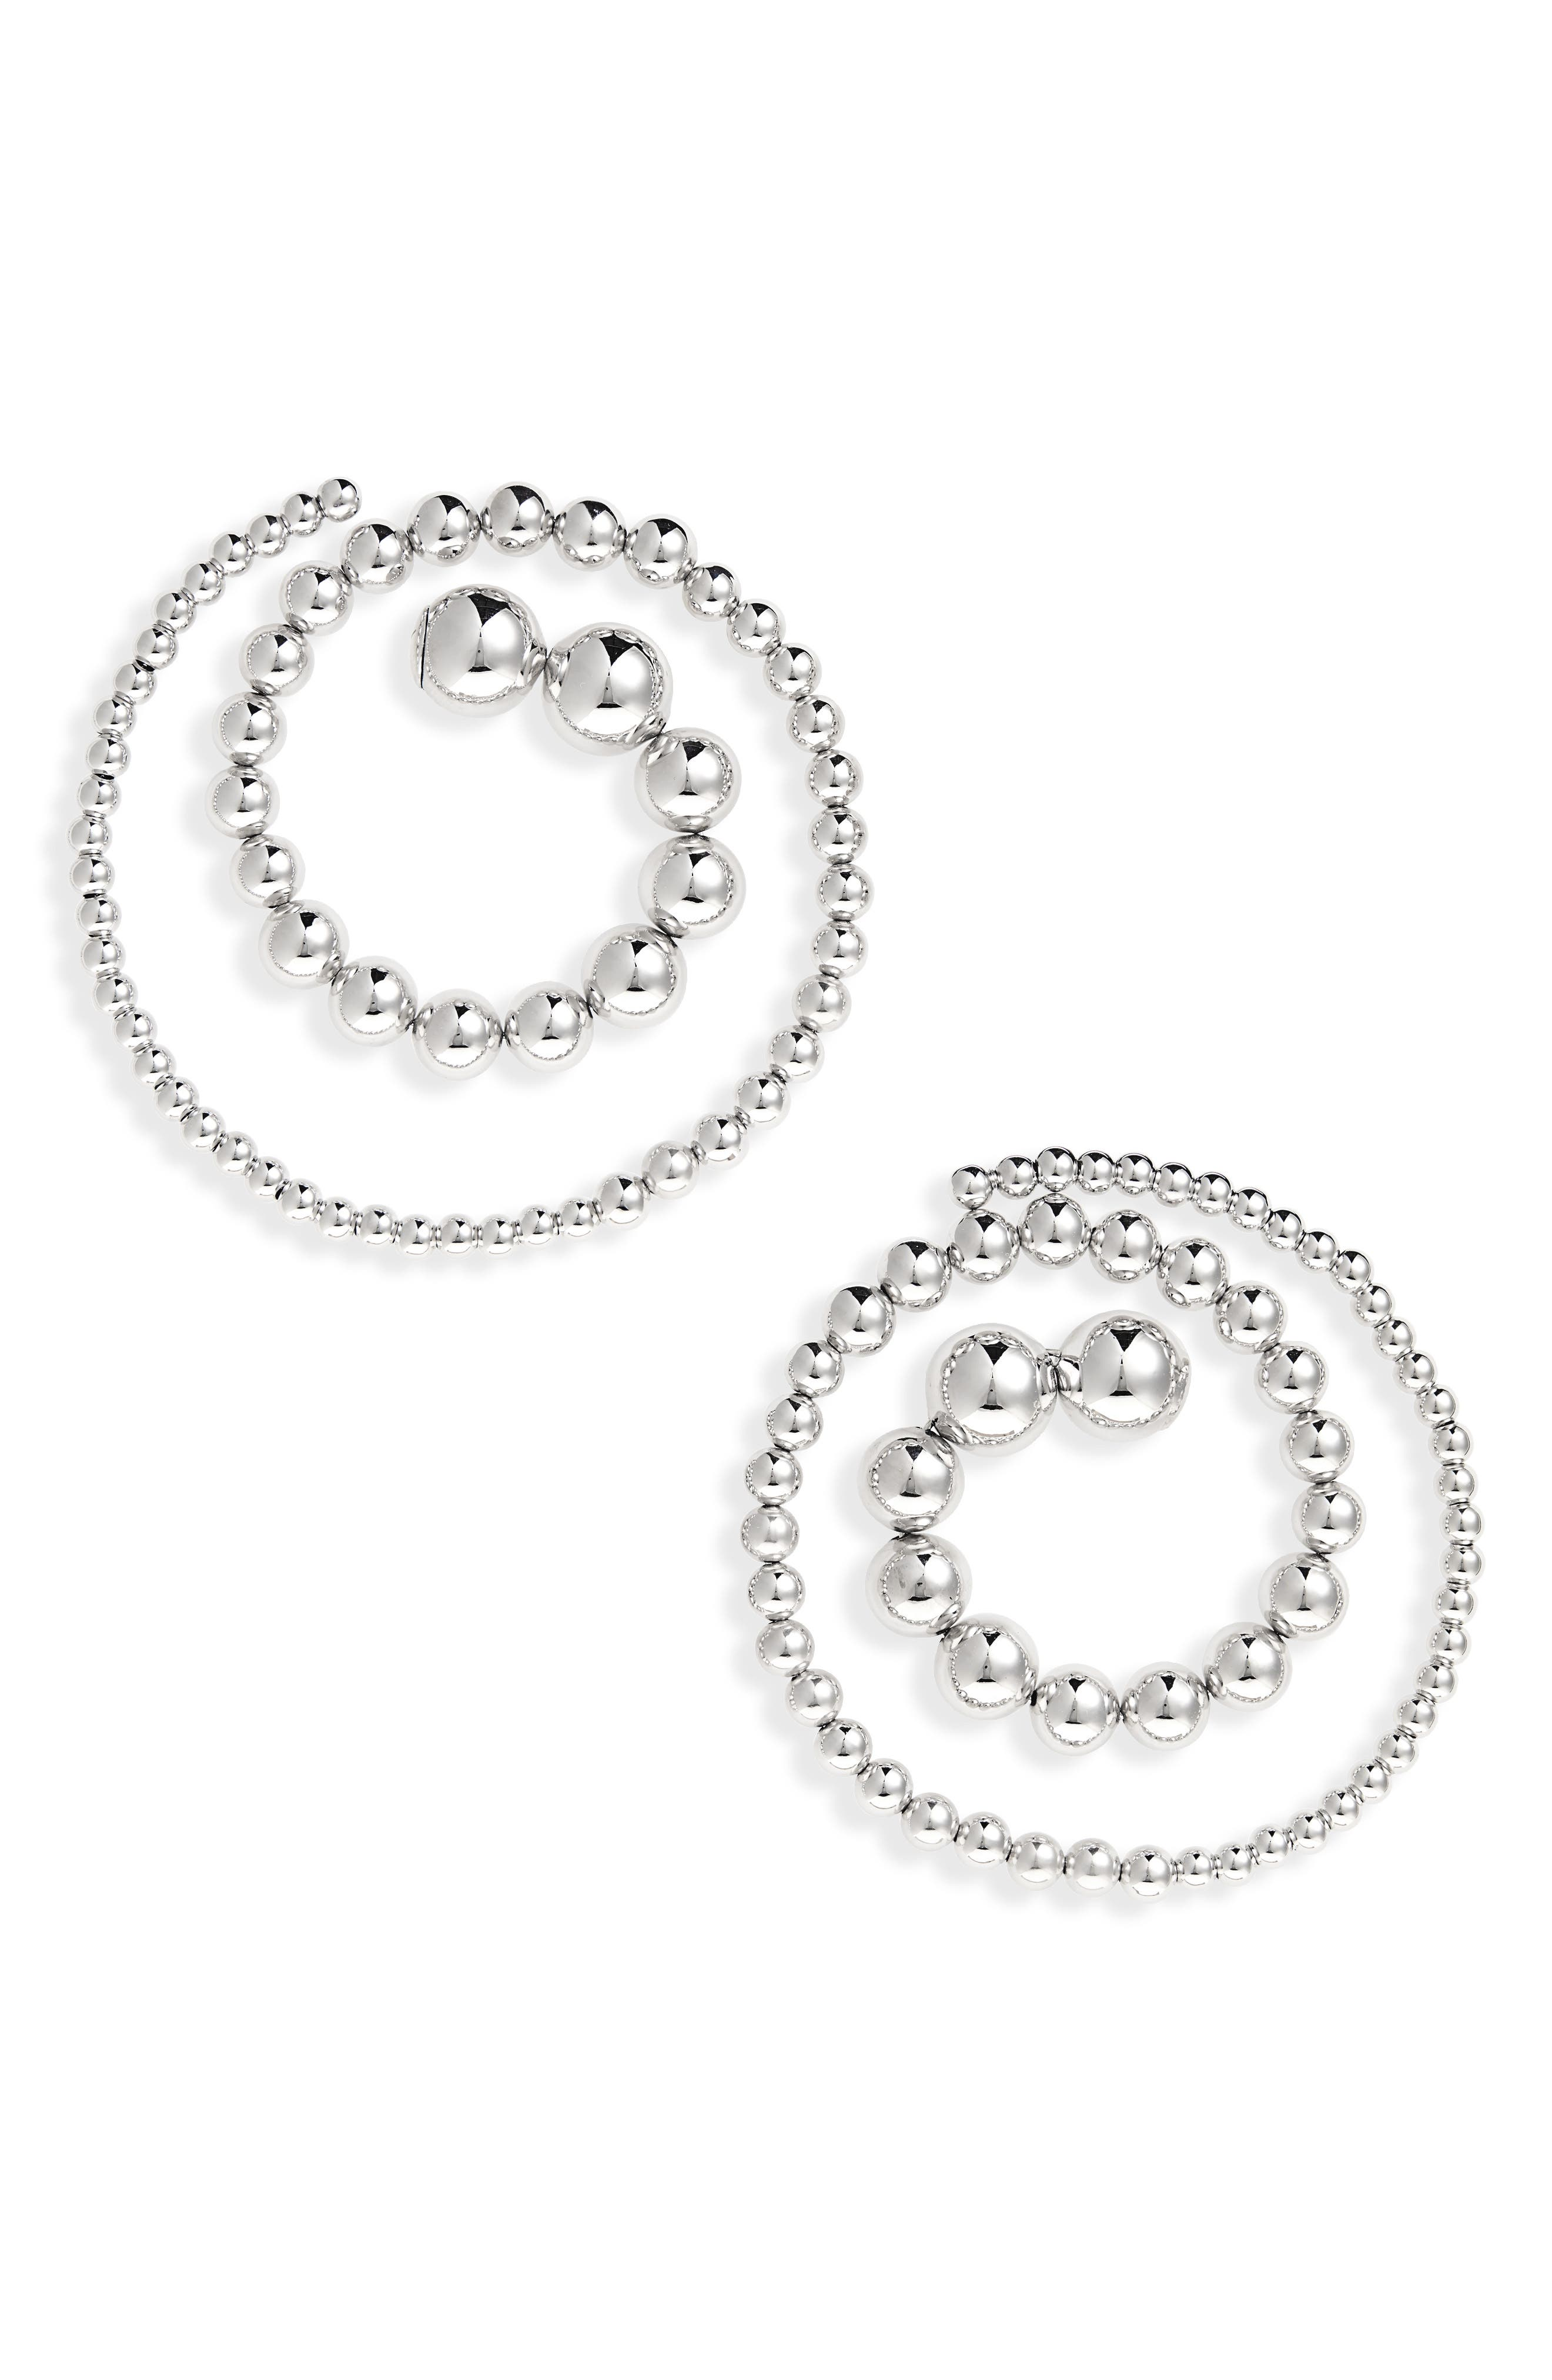 Spiral Ball Chain Earrings,                             Main thumbnail 1, color,                             SILVER